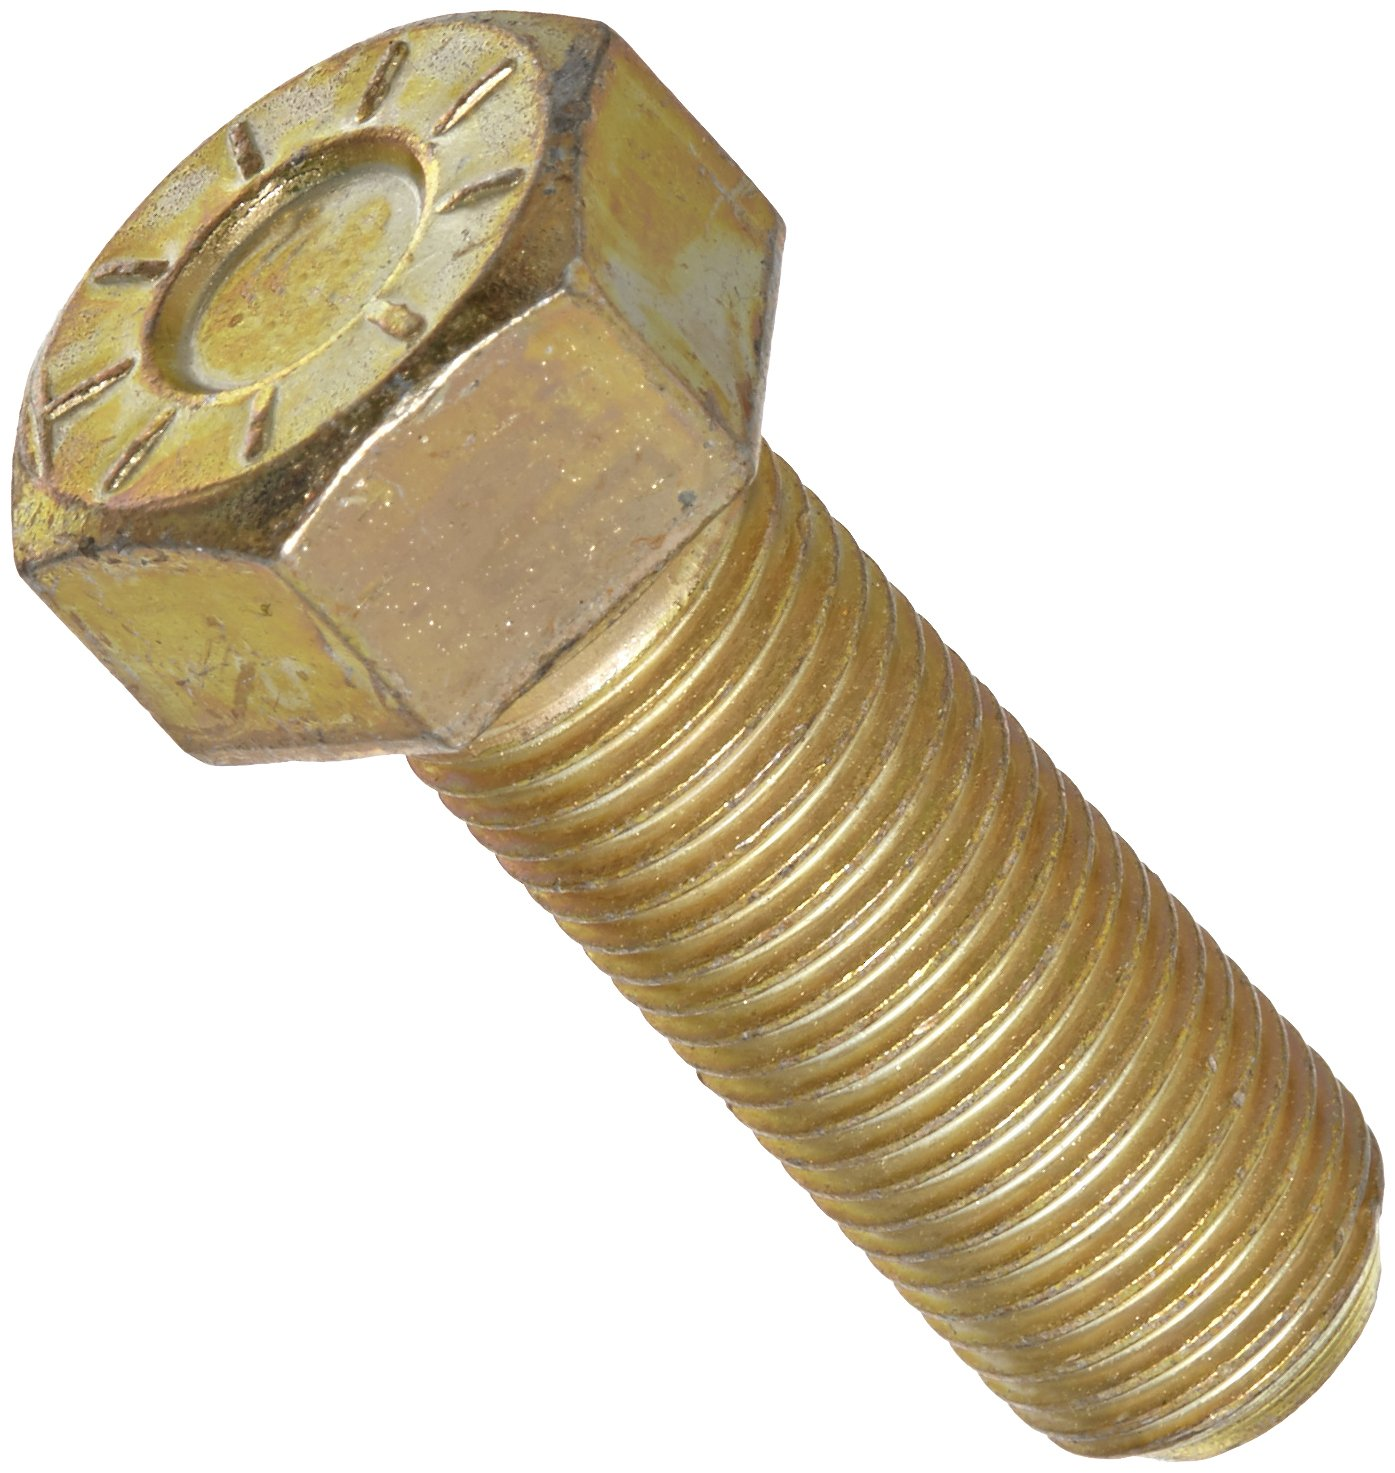 """Steel Hex Bolt, Grade 9, Zinc Yellow-Chromate Plated Finish, Hex Head, External Hex Drive, 3/4"""" Length, Fully Threaded, 3/8""""-24 Threads, Made in US (Pack of 25)"""